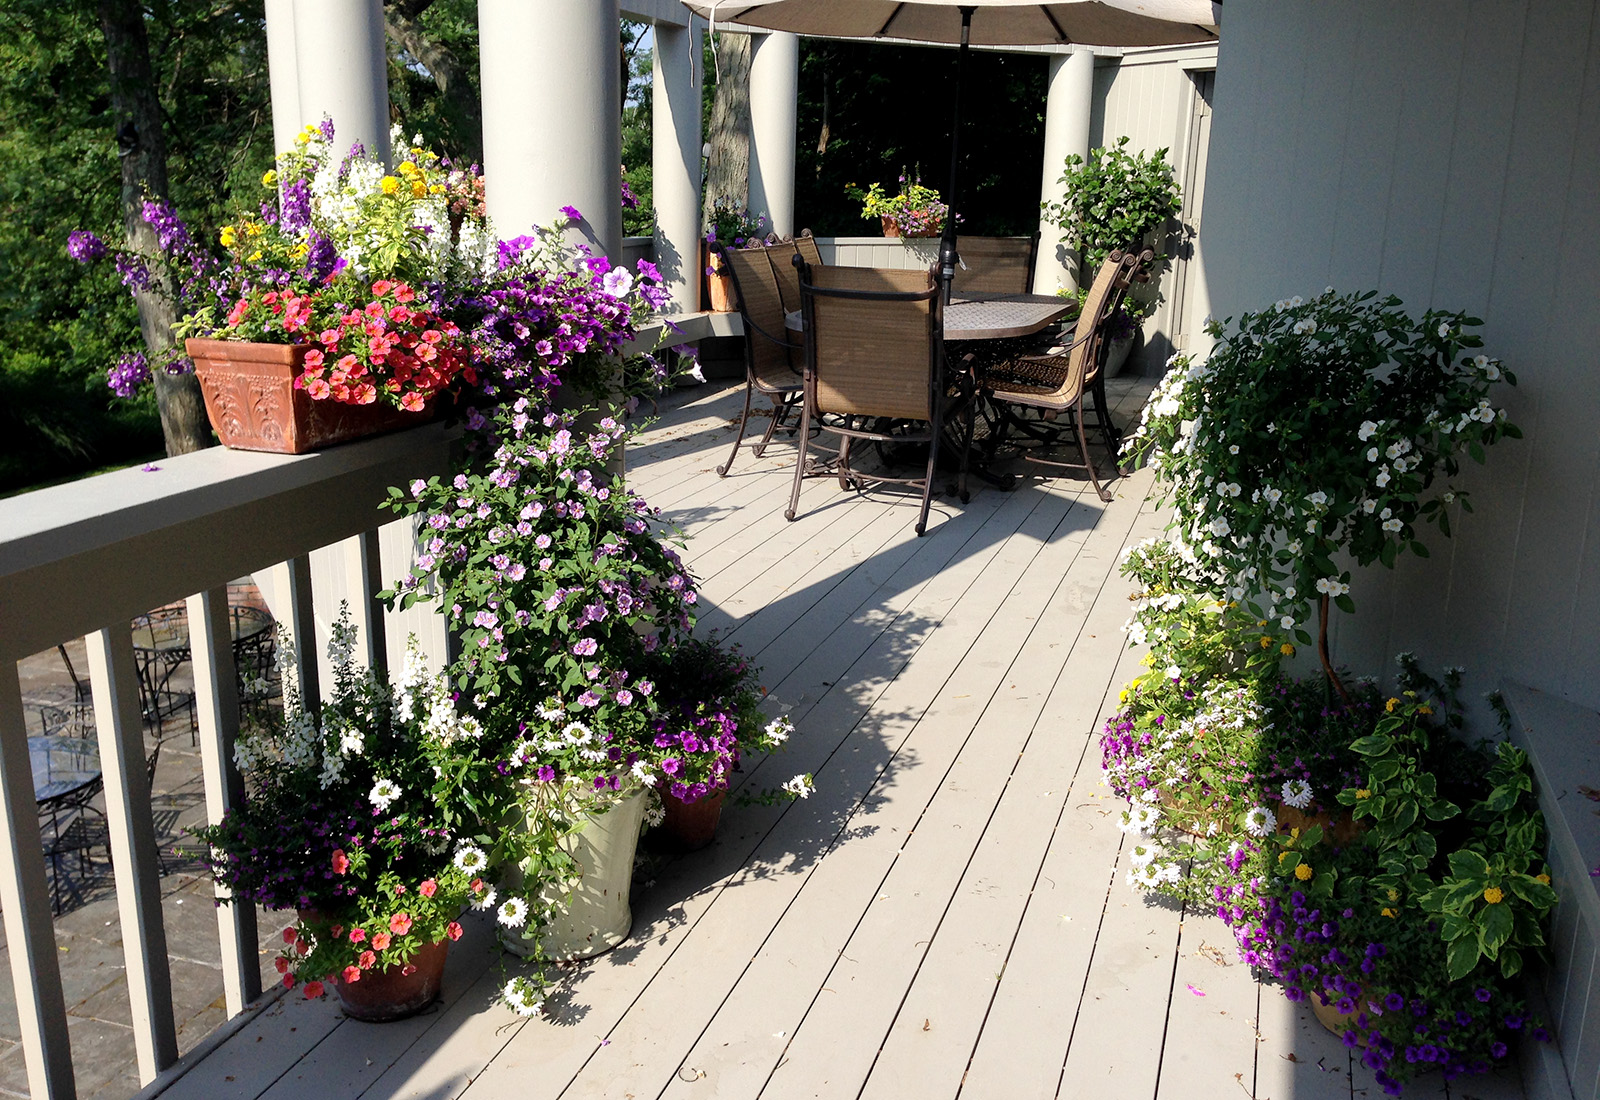 Flowering deck planters with mixed colors.